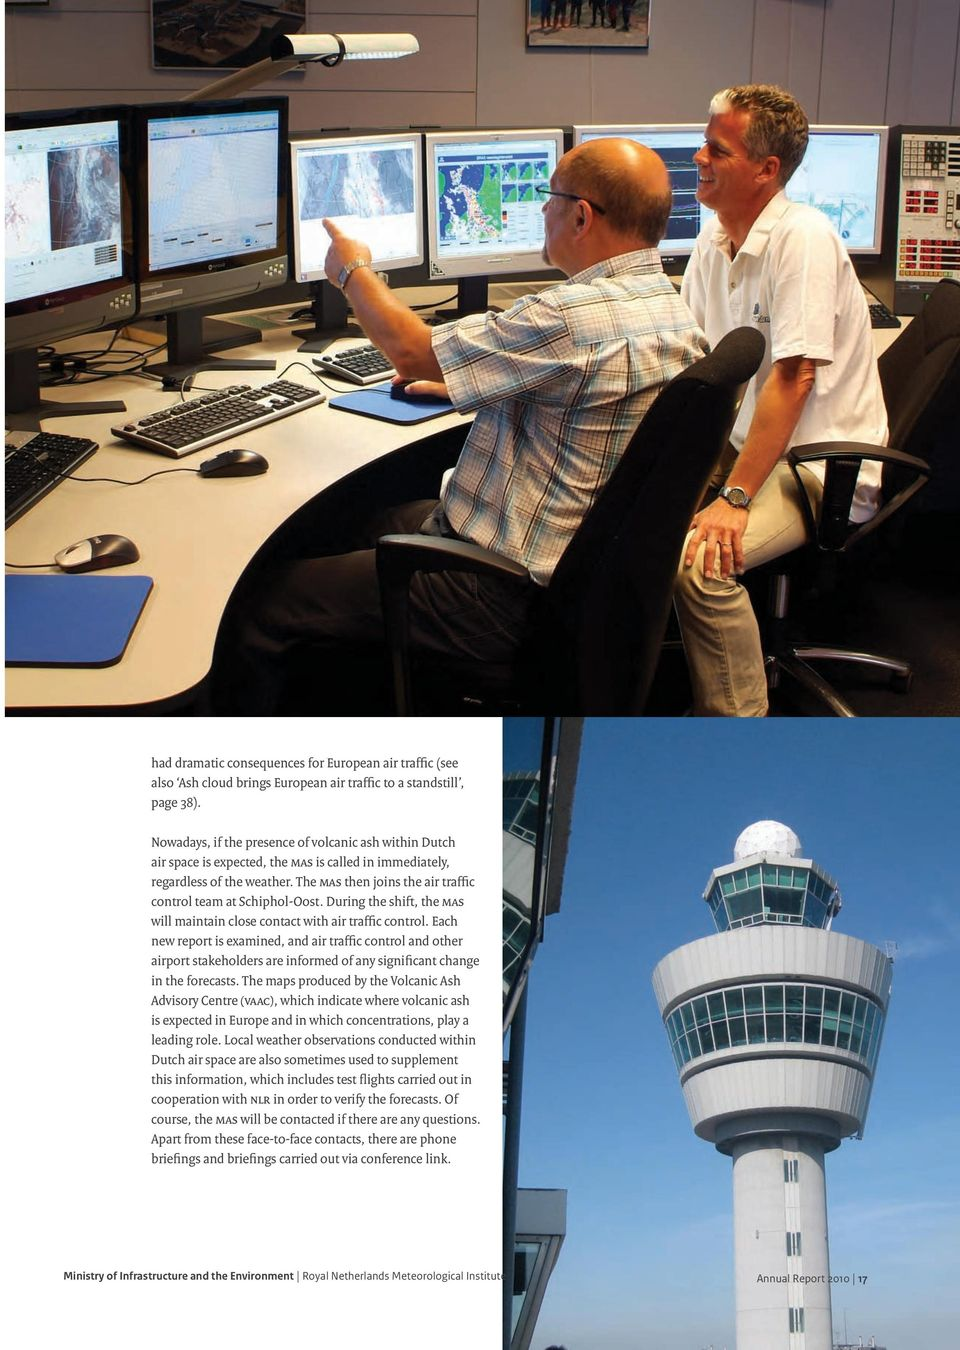 The MAS then joins the air traffic control team at Schiphol-Oost. During the shift, the MAS will maintain close contact with air traffic control.